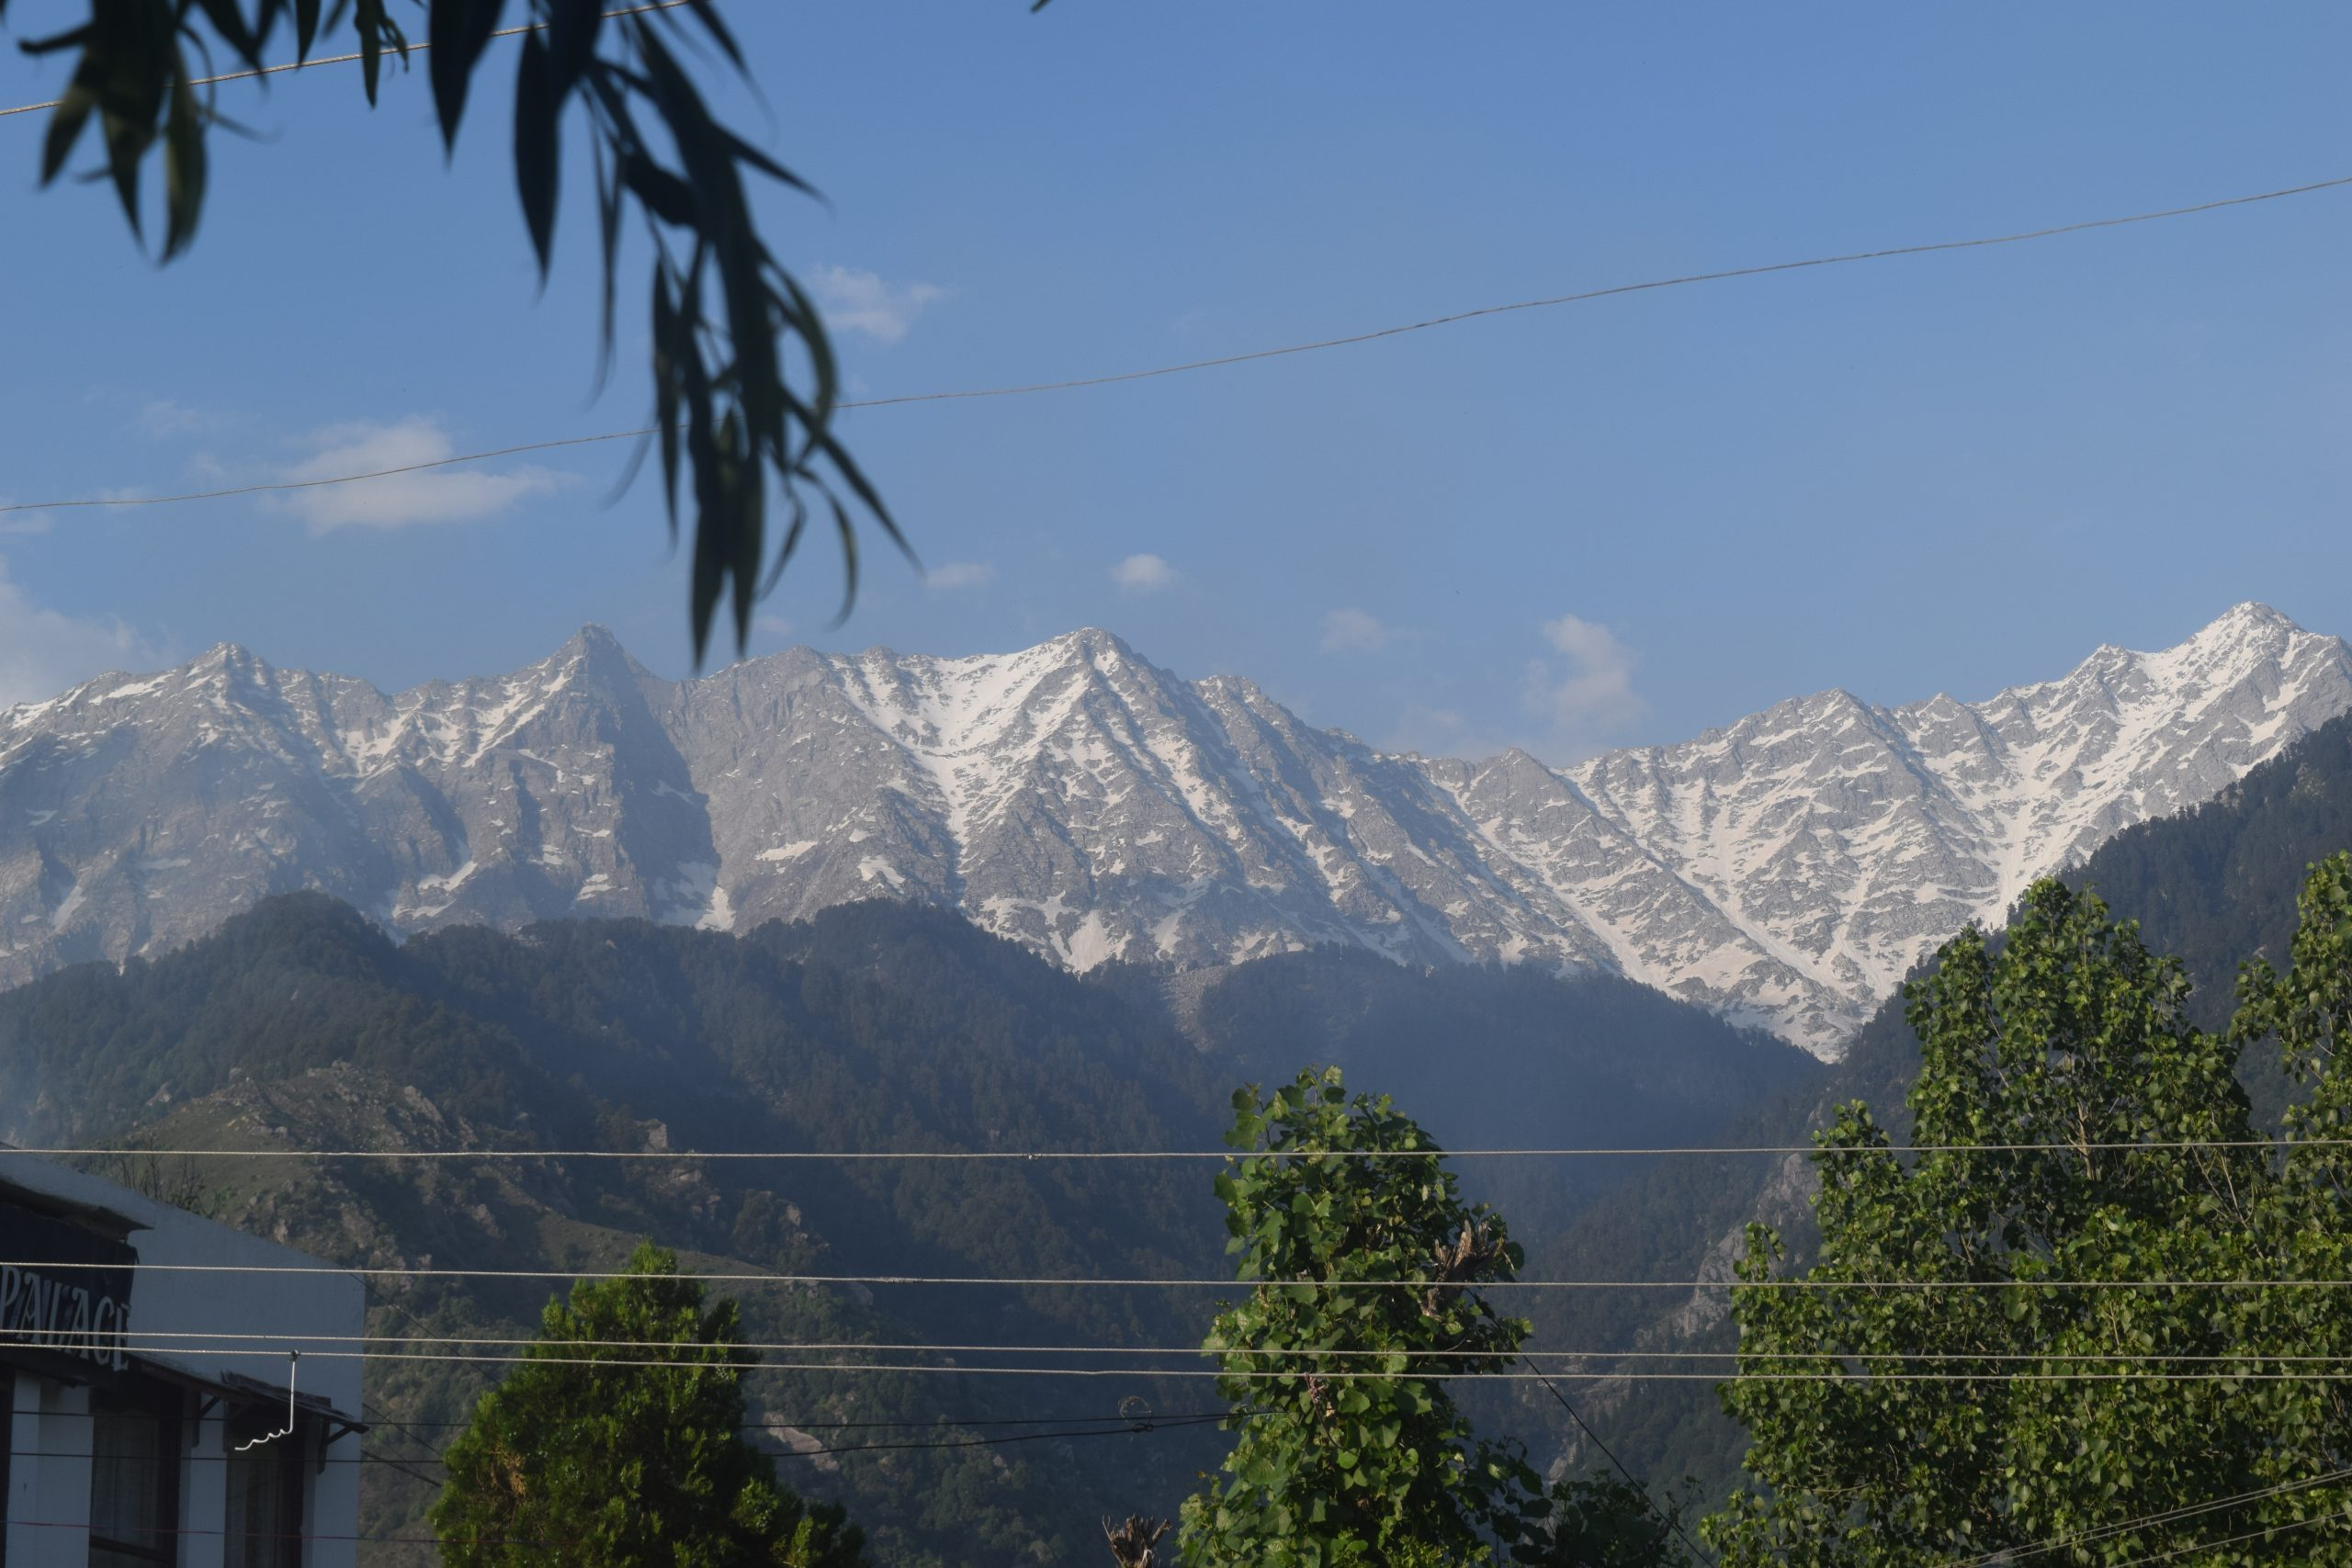 Snowy Mountains Scenery